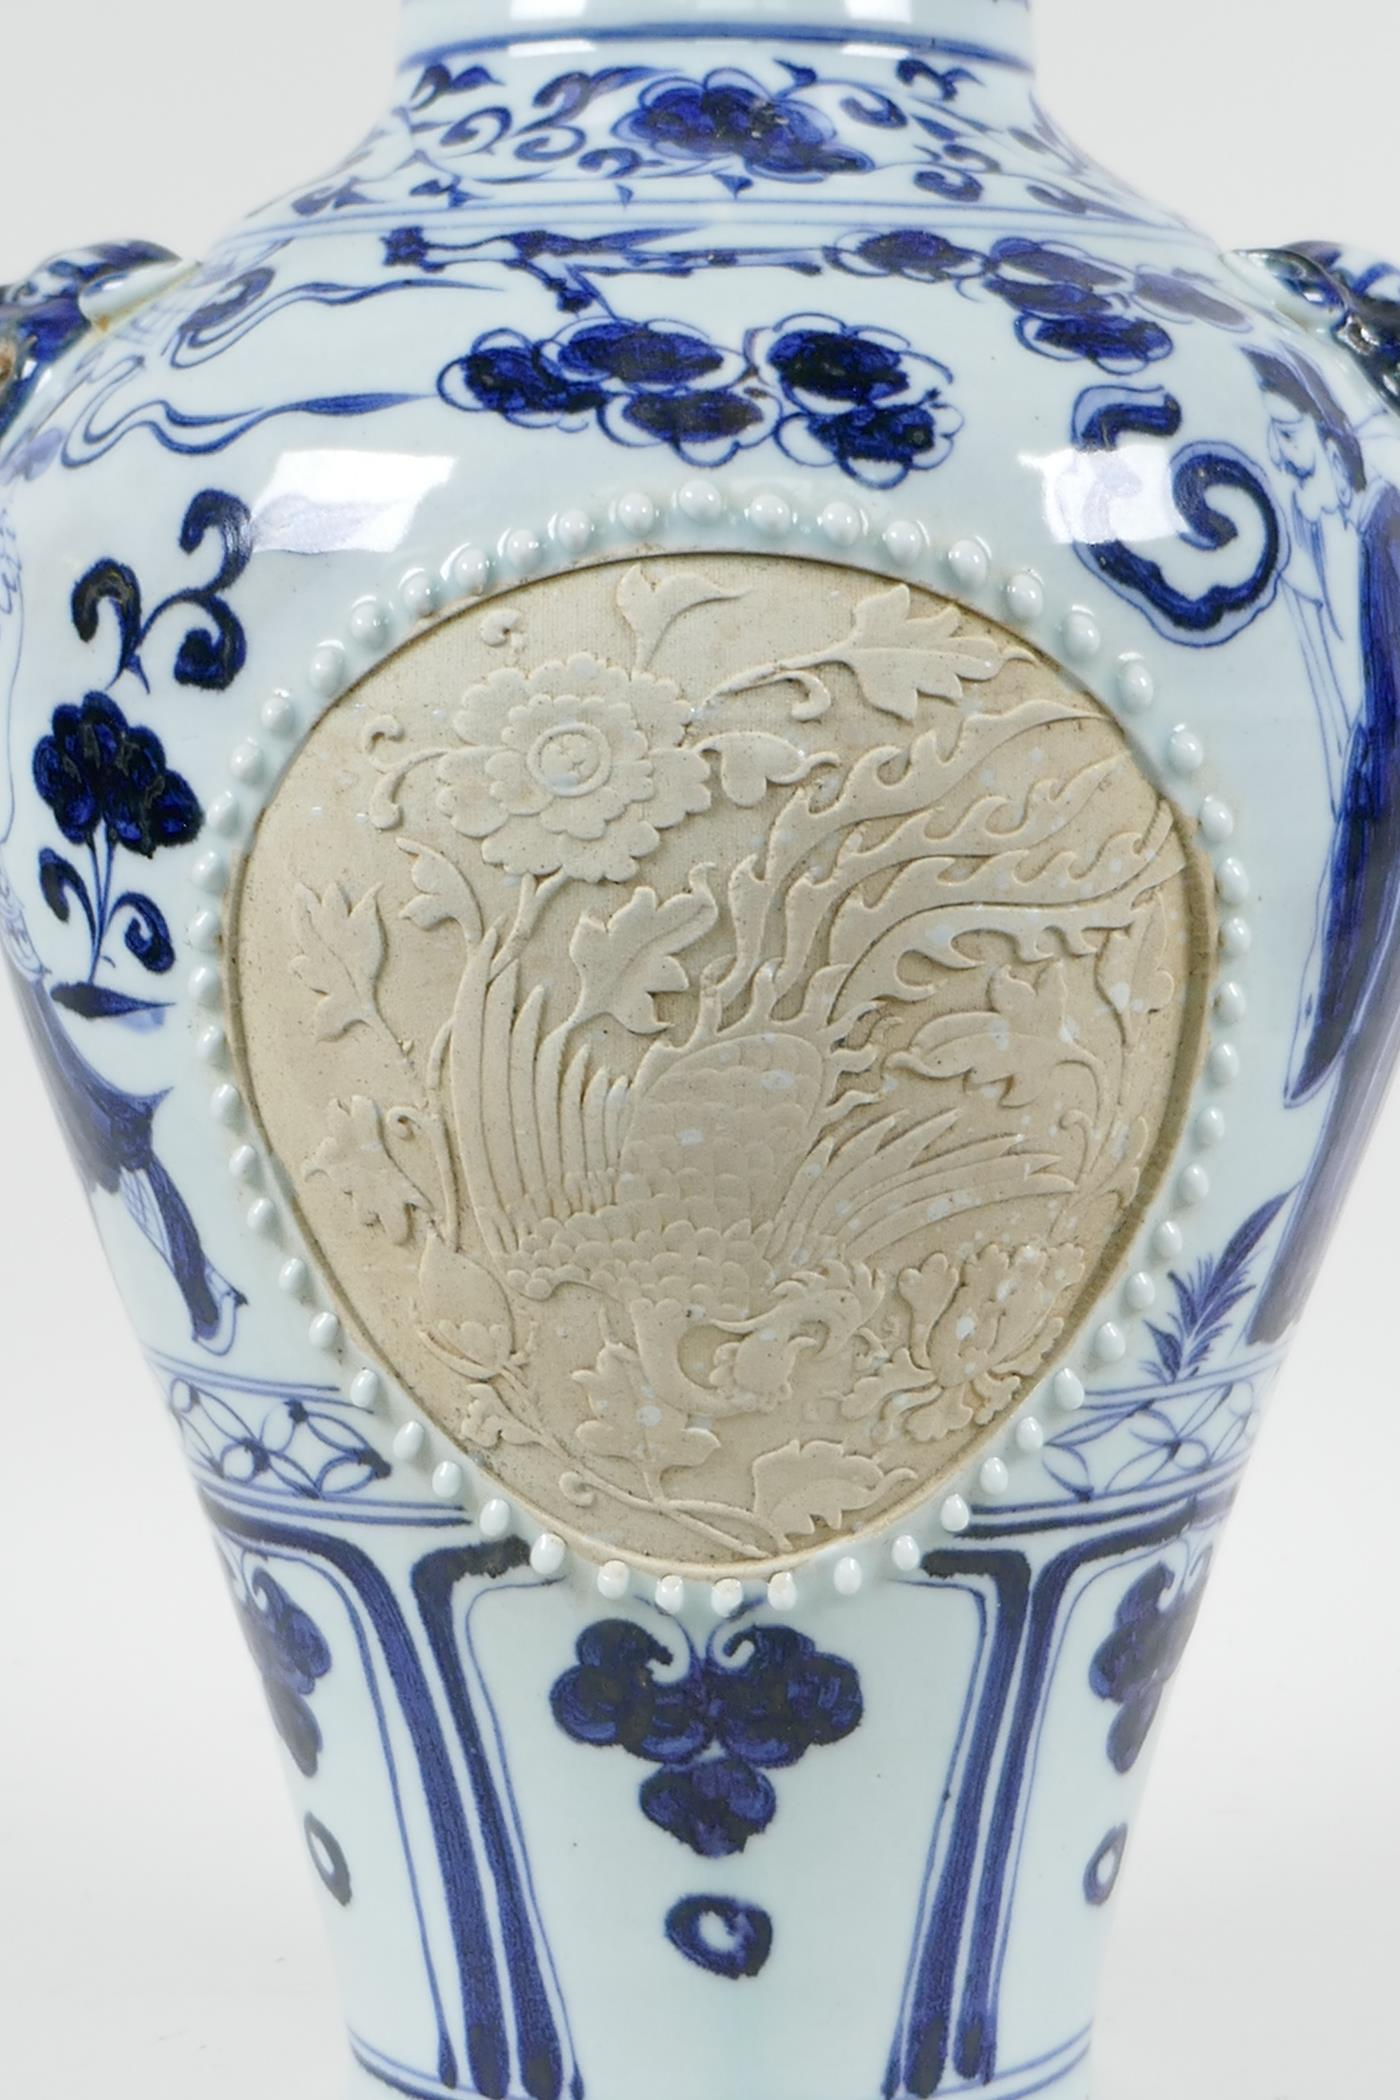 A Chinese blue and white porcelain vase with two lion mask handles, chased decorative panels - Image 2 of 8